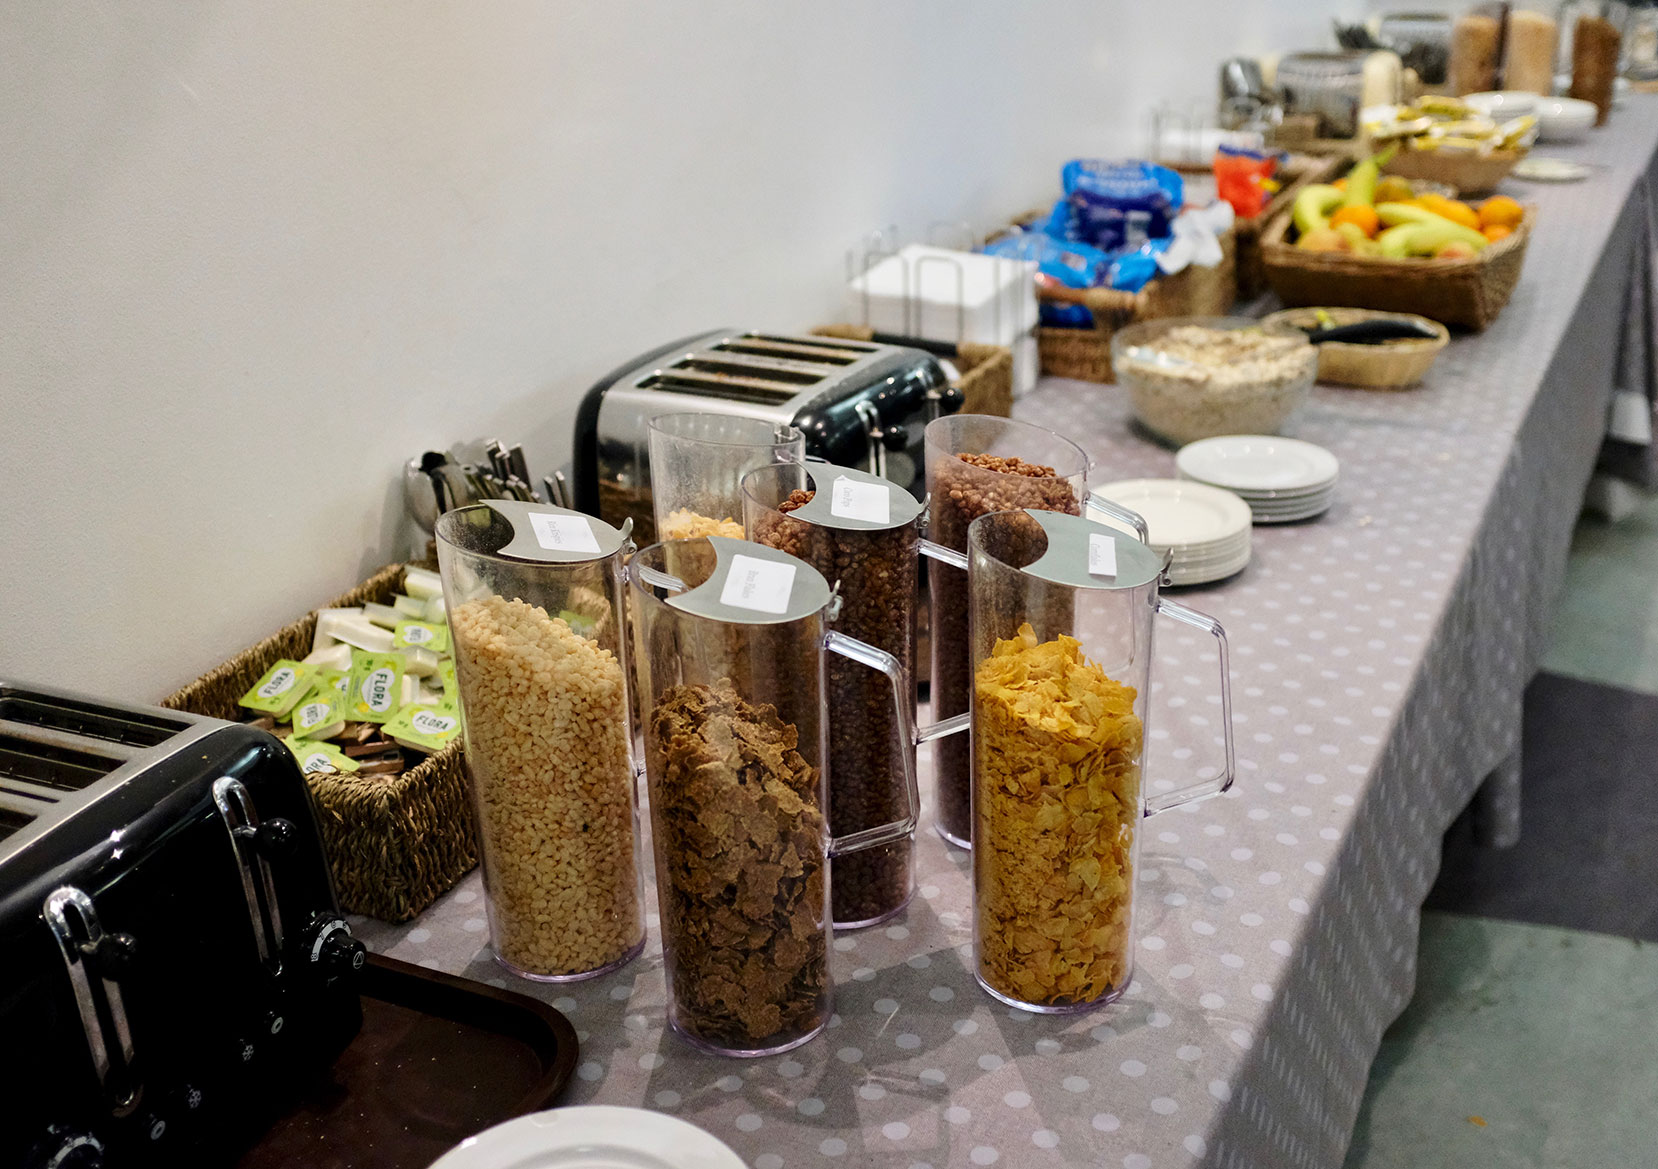 We provide all guests with a complimentary light breakfast at the Bath YMCA